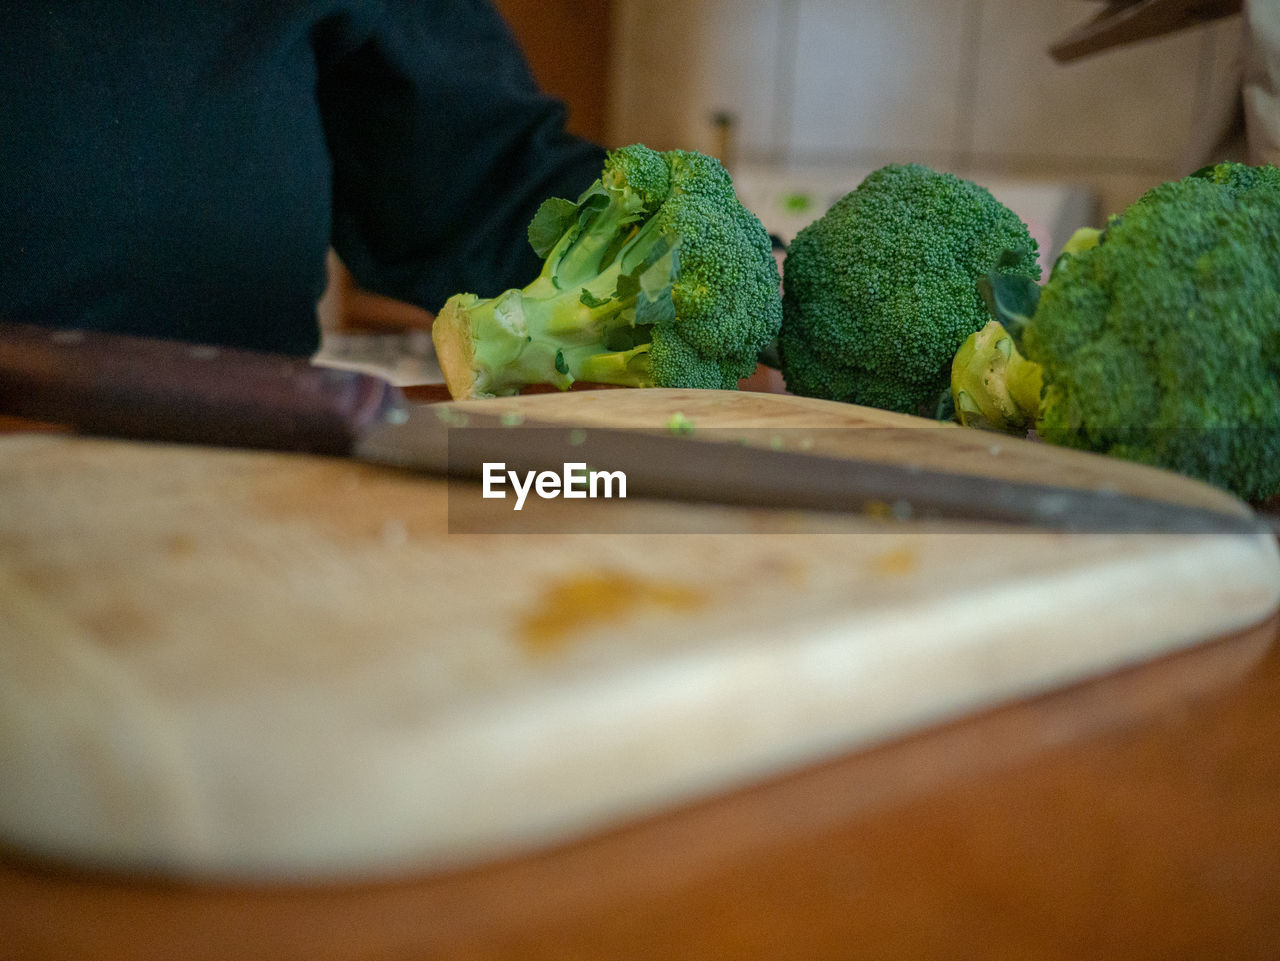 food and drink, food, healthy eating, indoors, selective focus, freshness, kitchen, one person, real people, vegetable, cutting board, domestic room, wellbeing, kitchen knife, close-up, green color, domestic kitchen, table, home, preparation, preparing food, hand